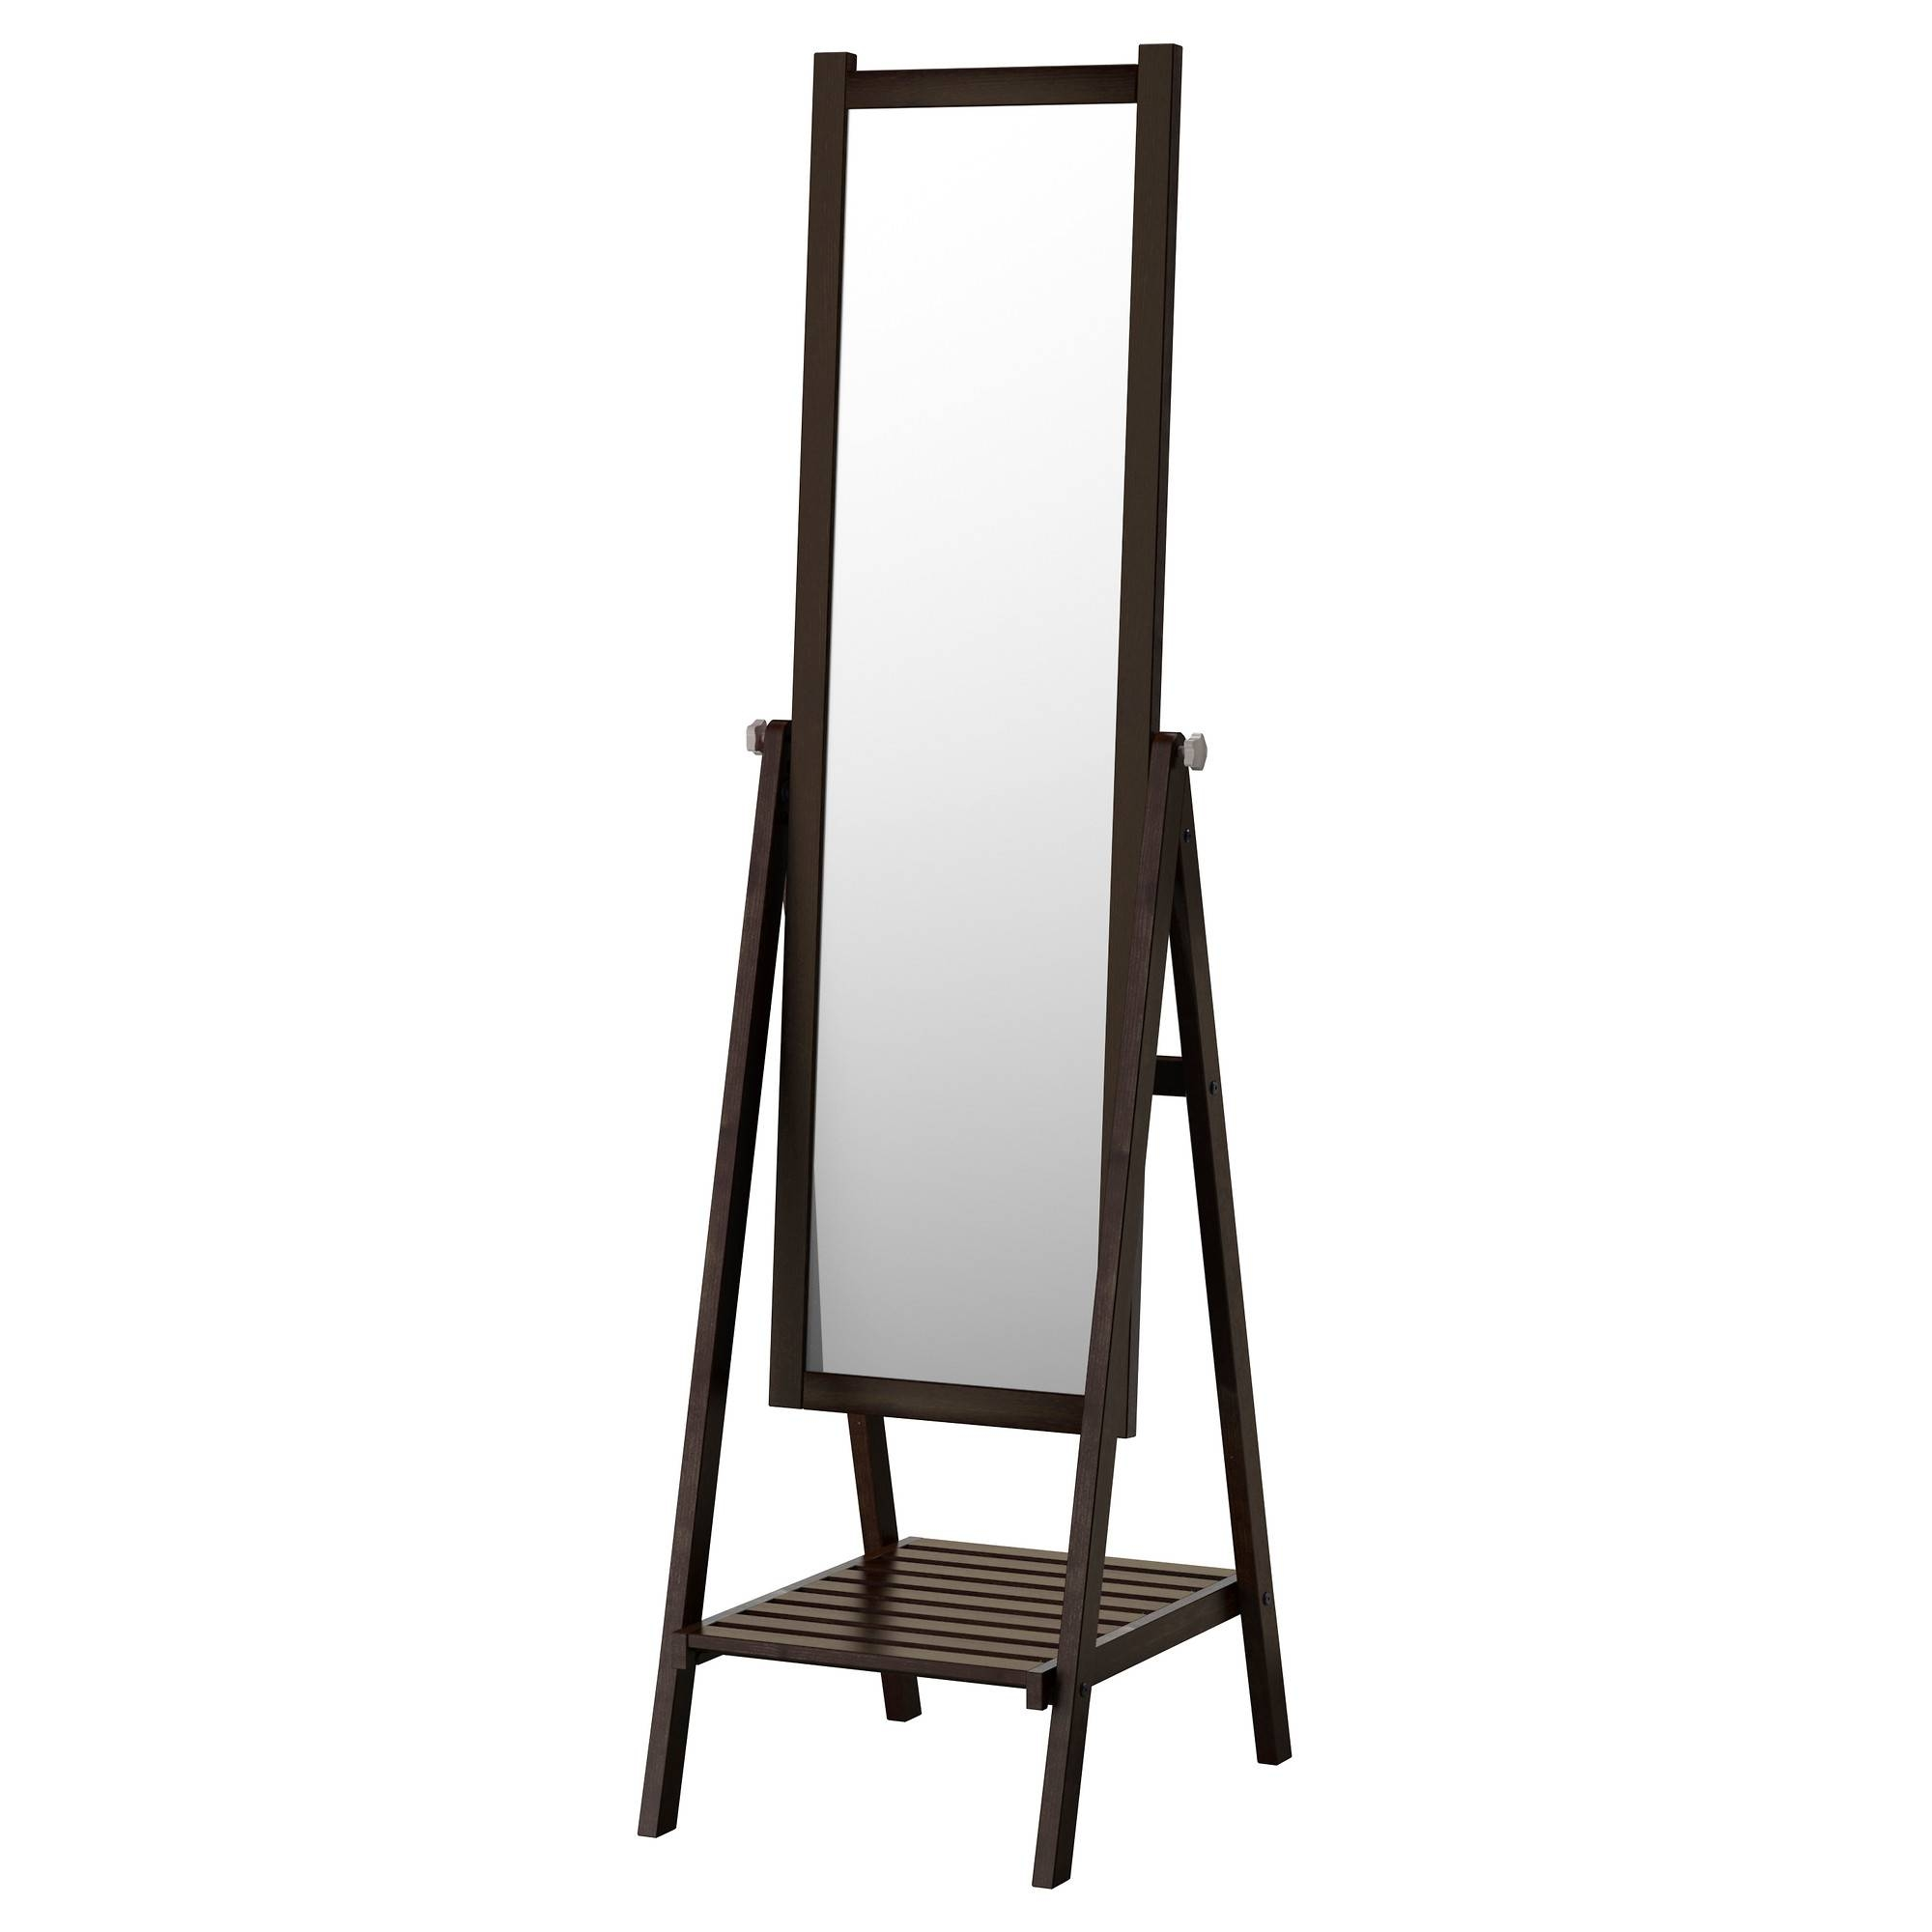 Mirrors - Ikea throughout Free Standing Dress Mirrors (Image 22 of 25)